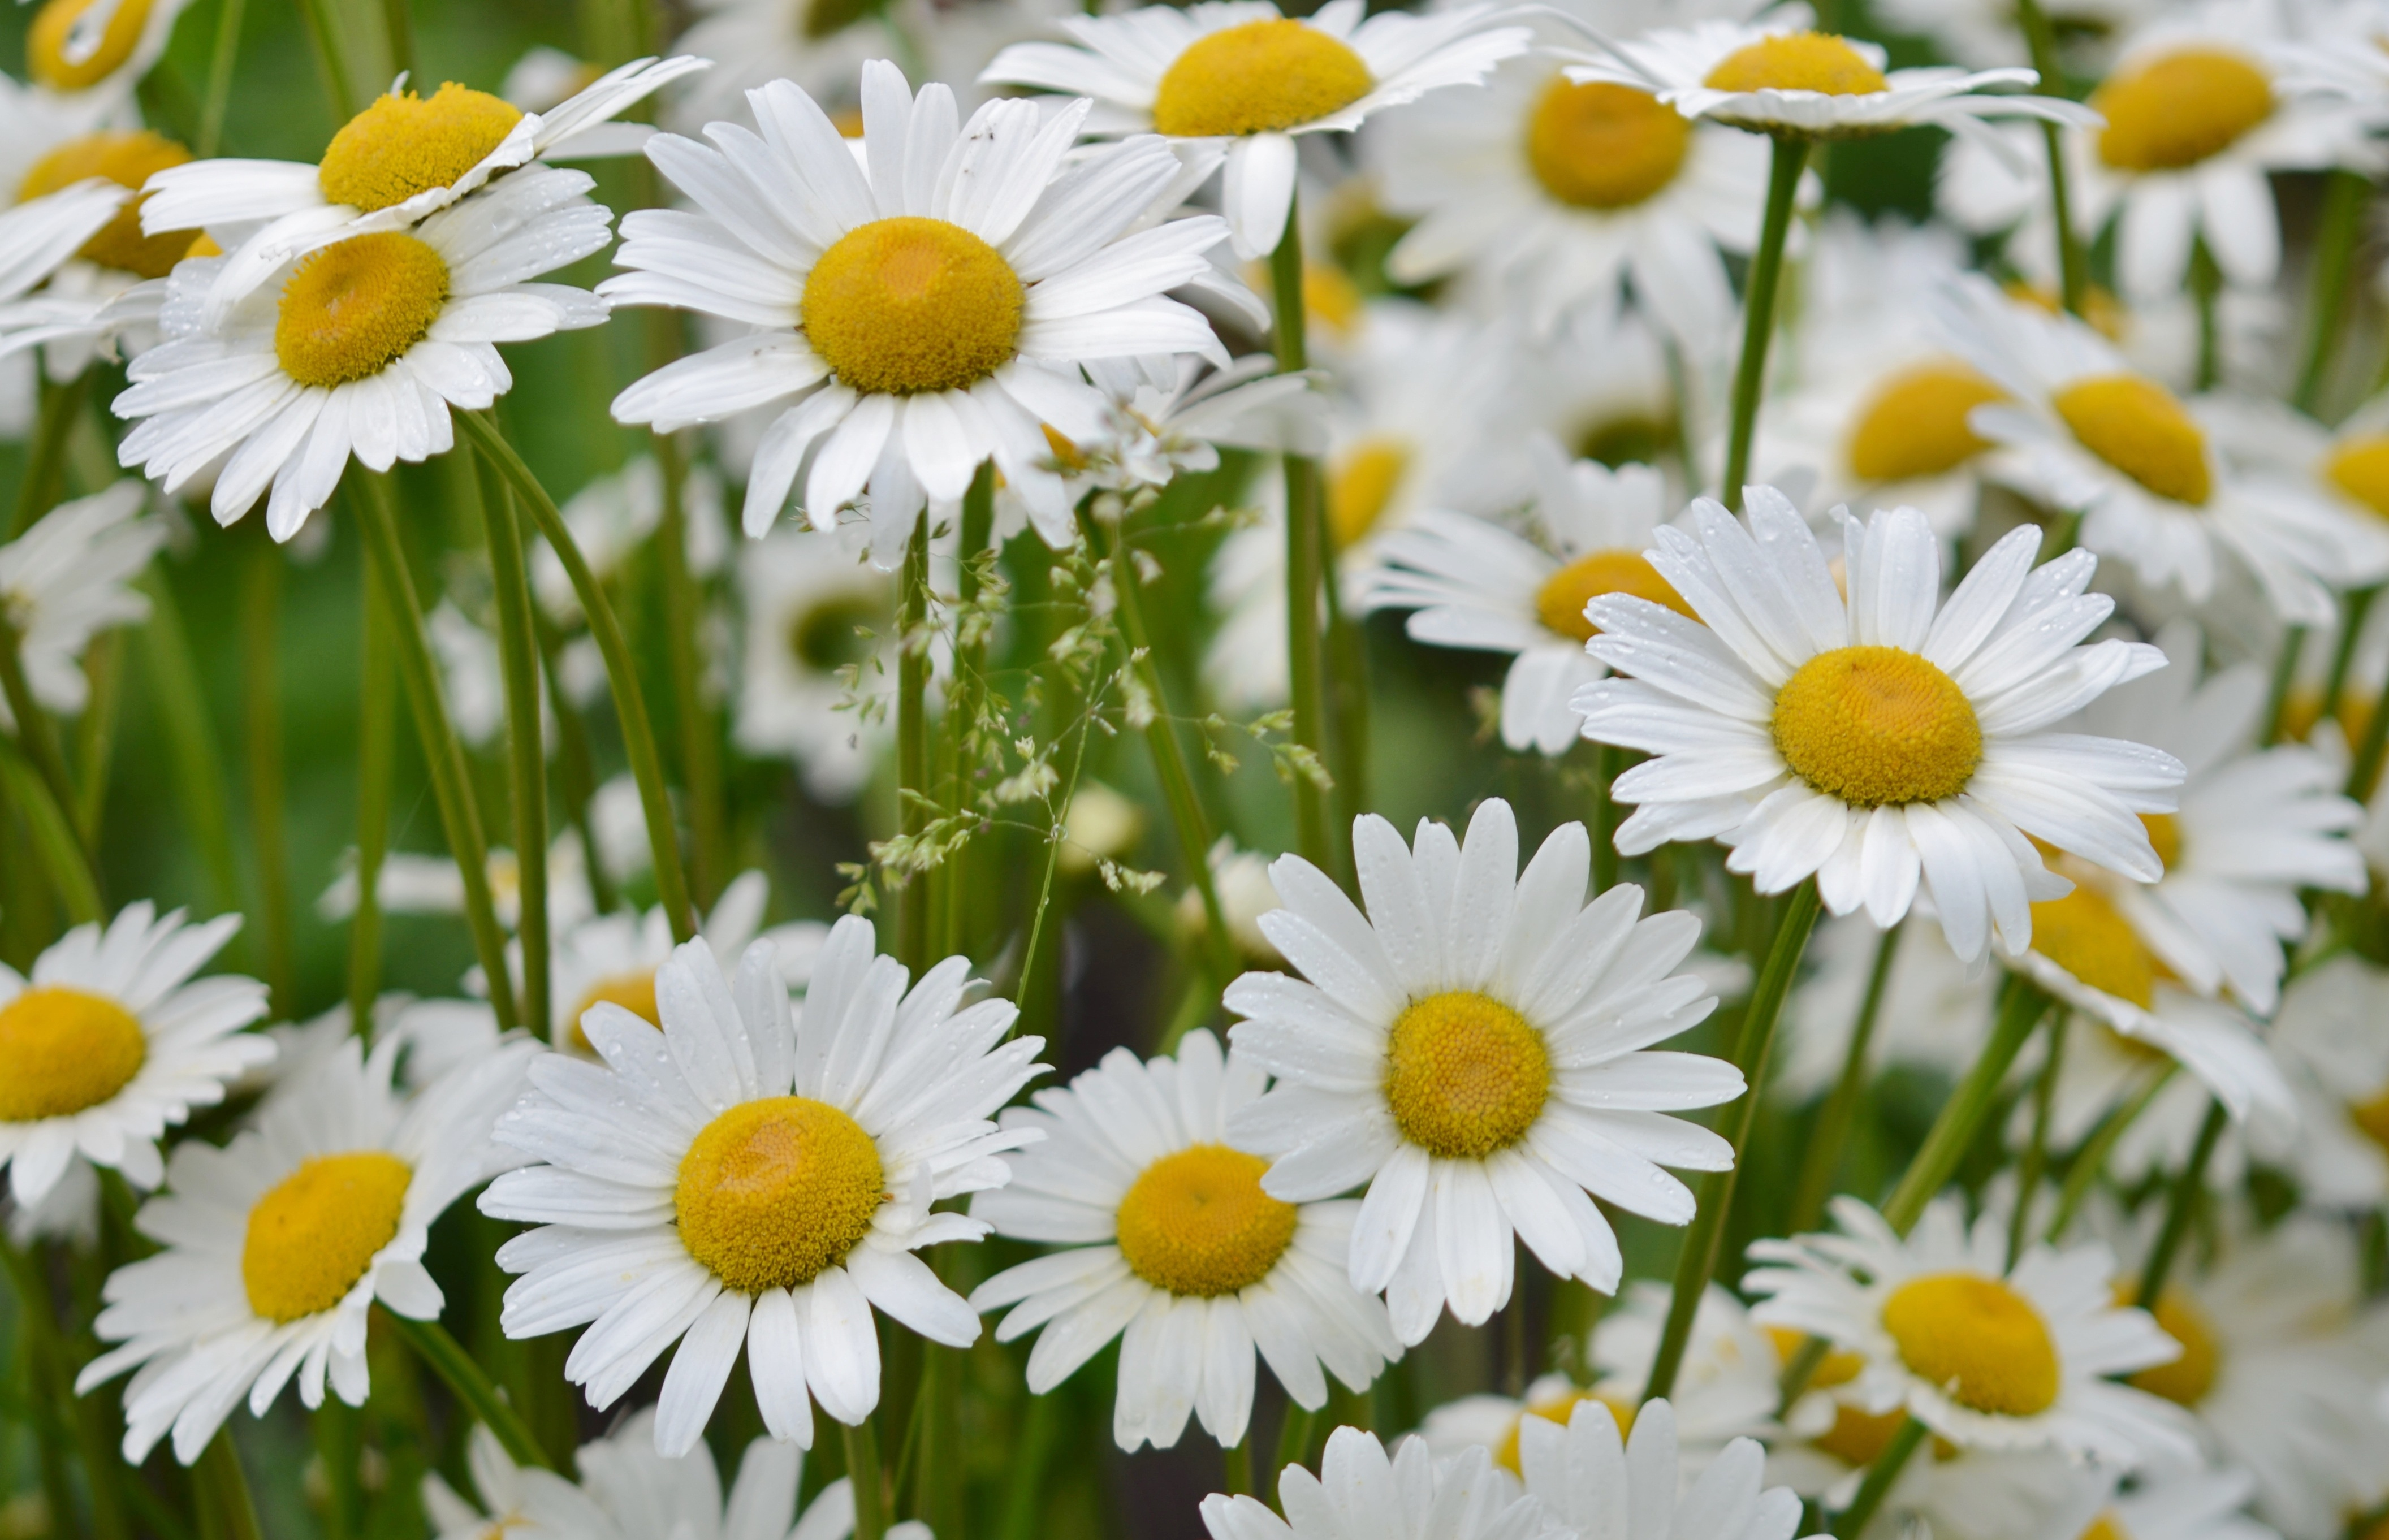 Field Of White Daisies Free Image